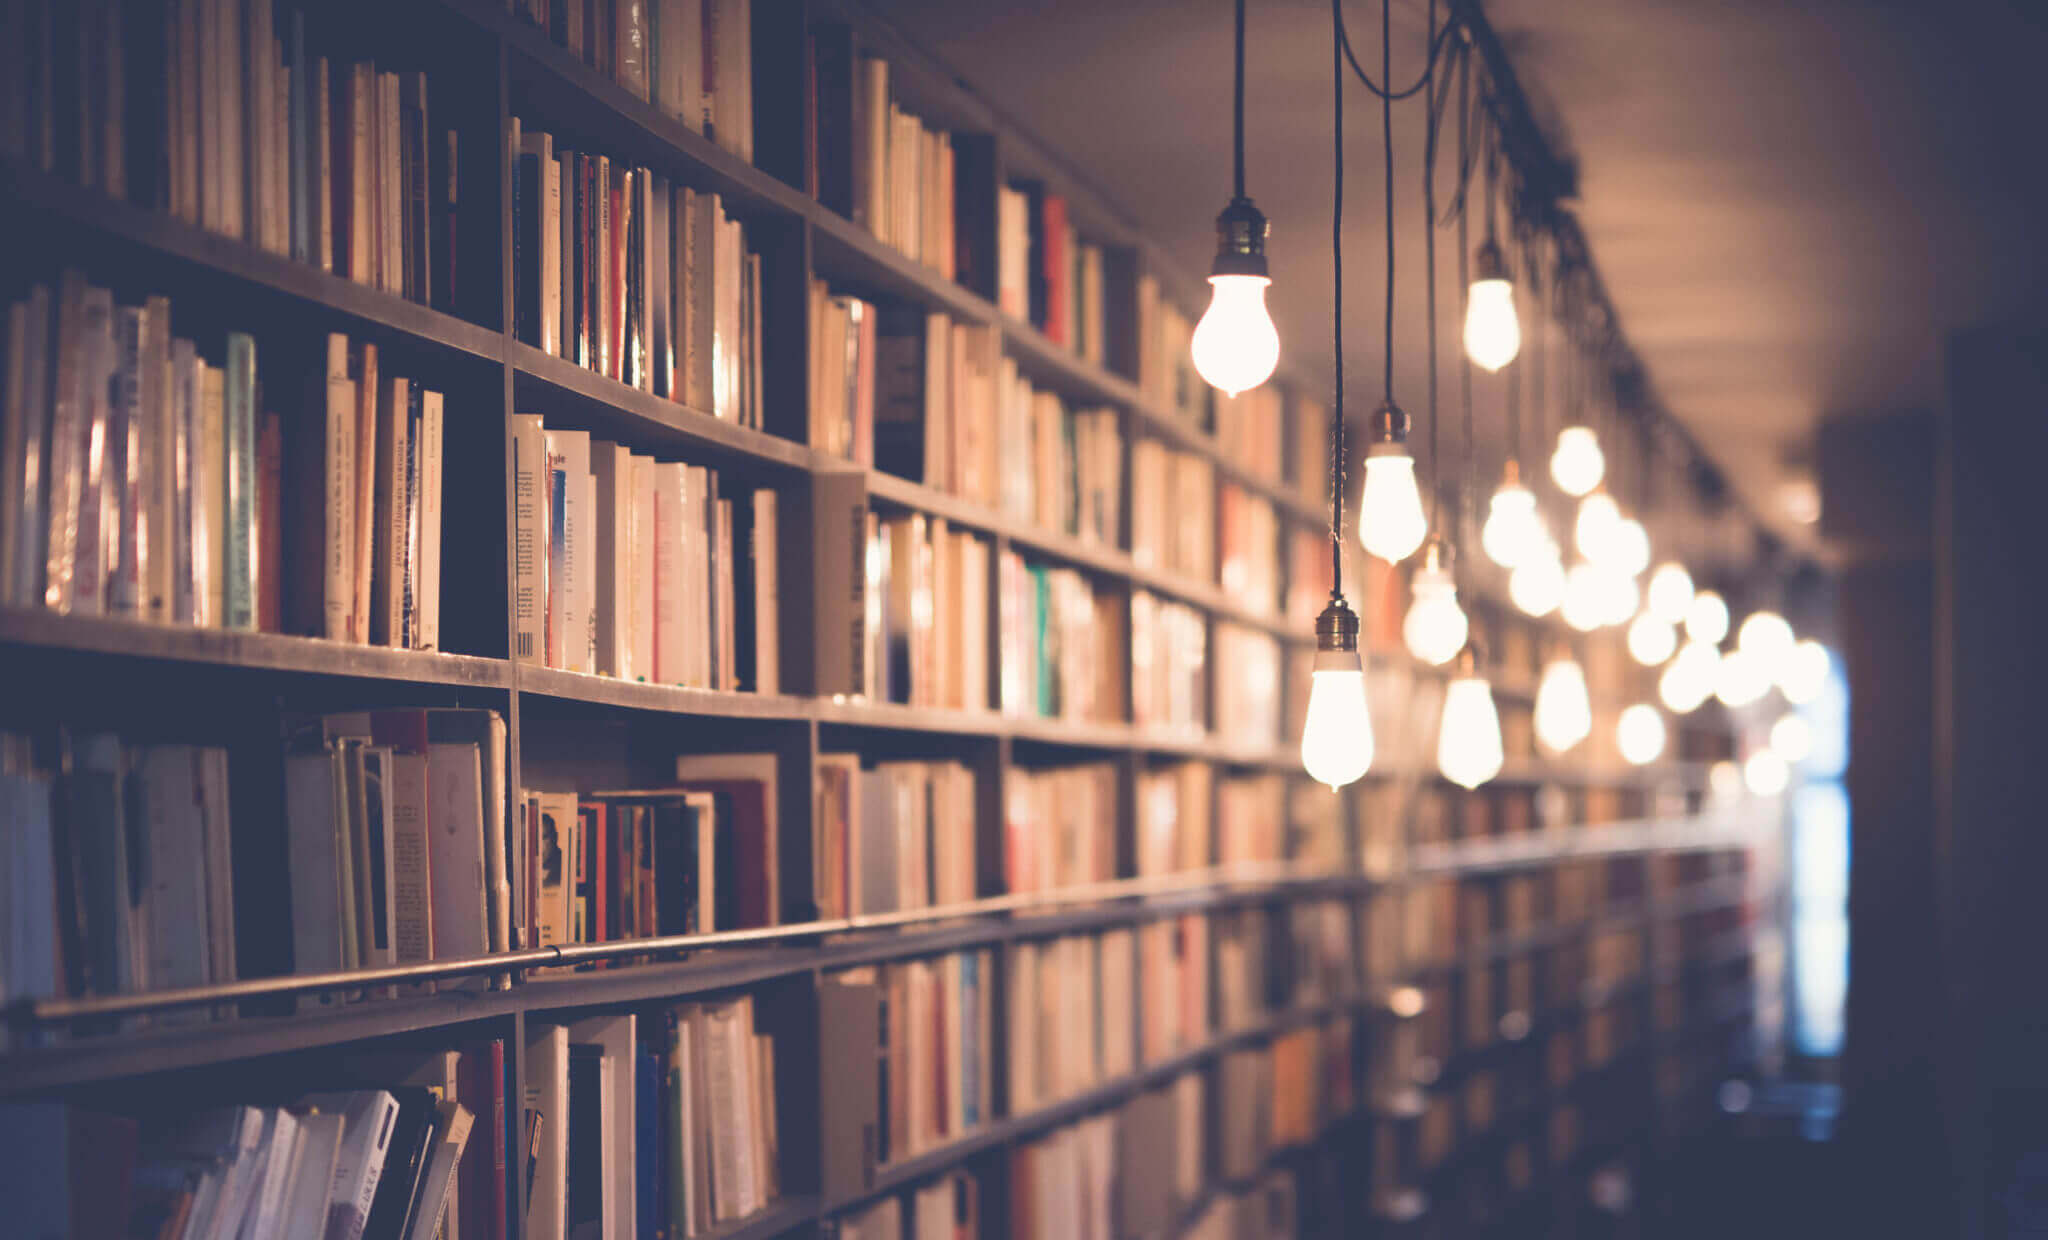 The 6 Books Driving Innovation in Sustainable Development